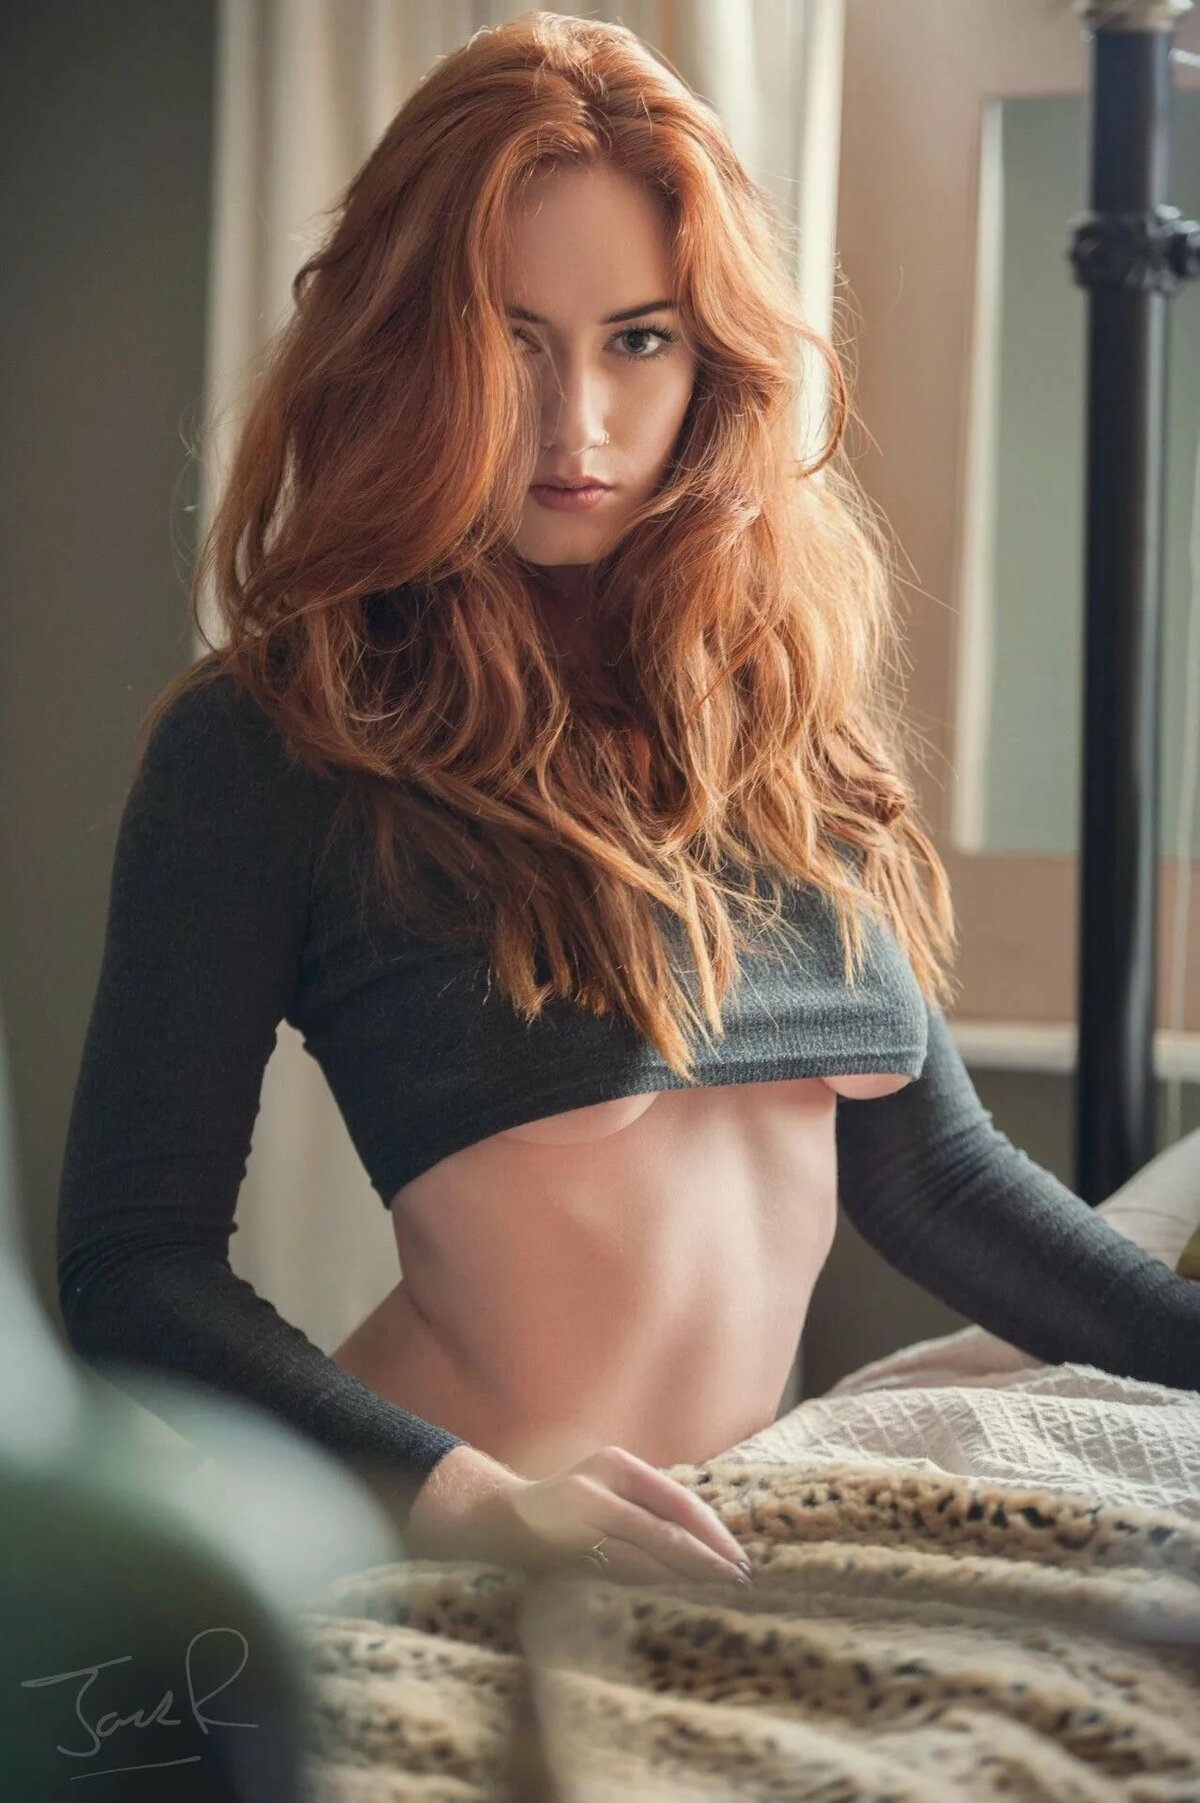 Redheads being sexy